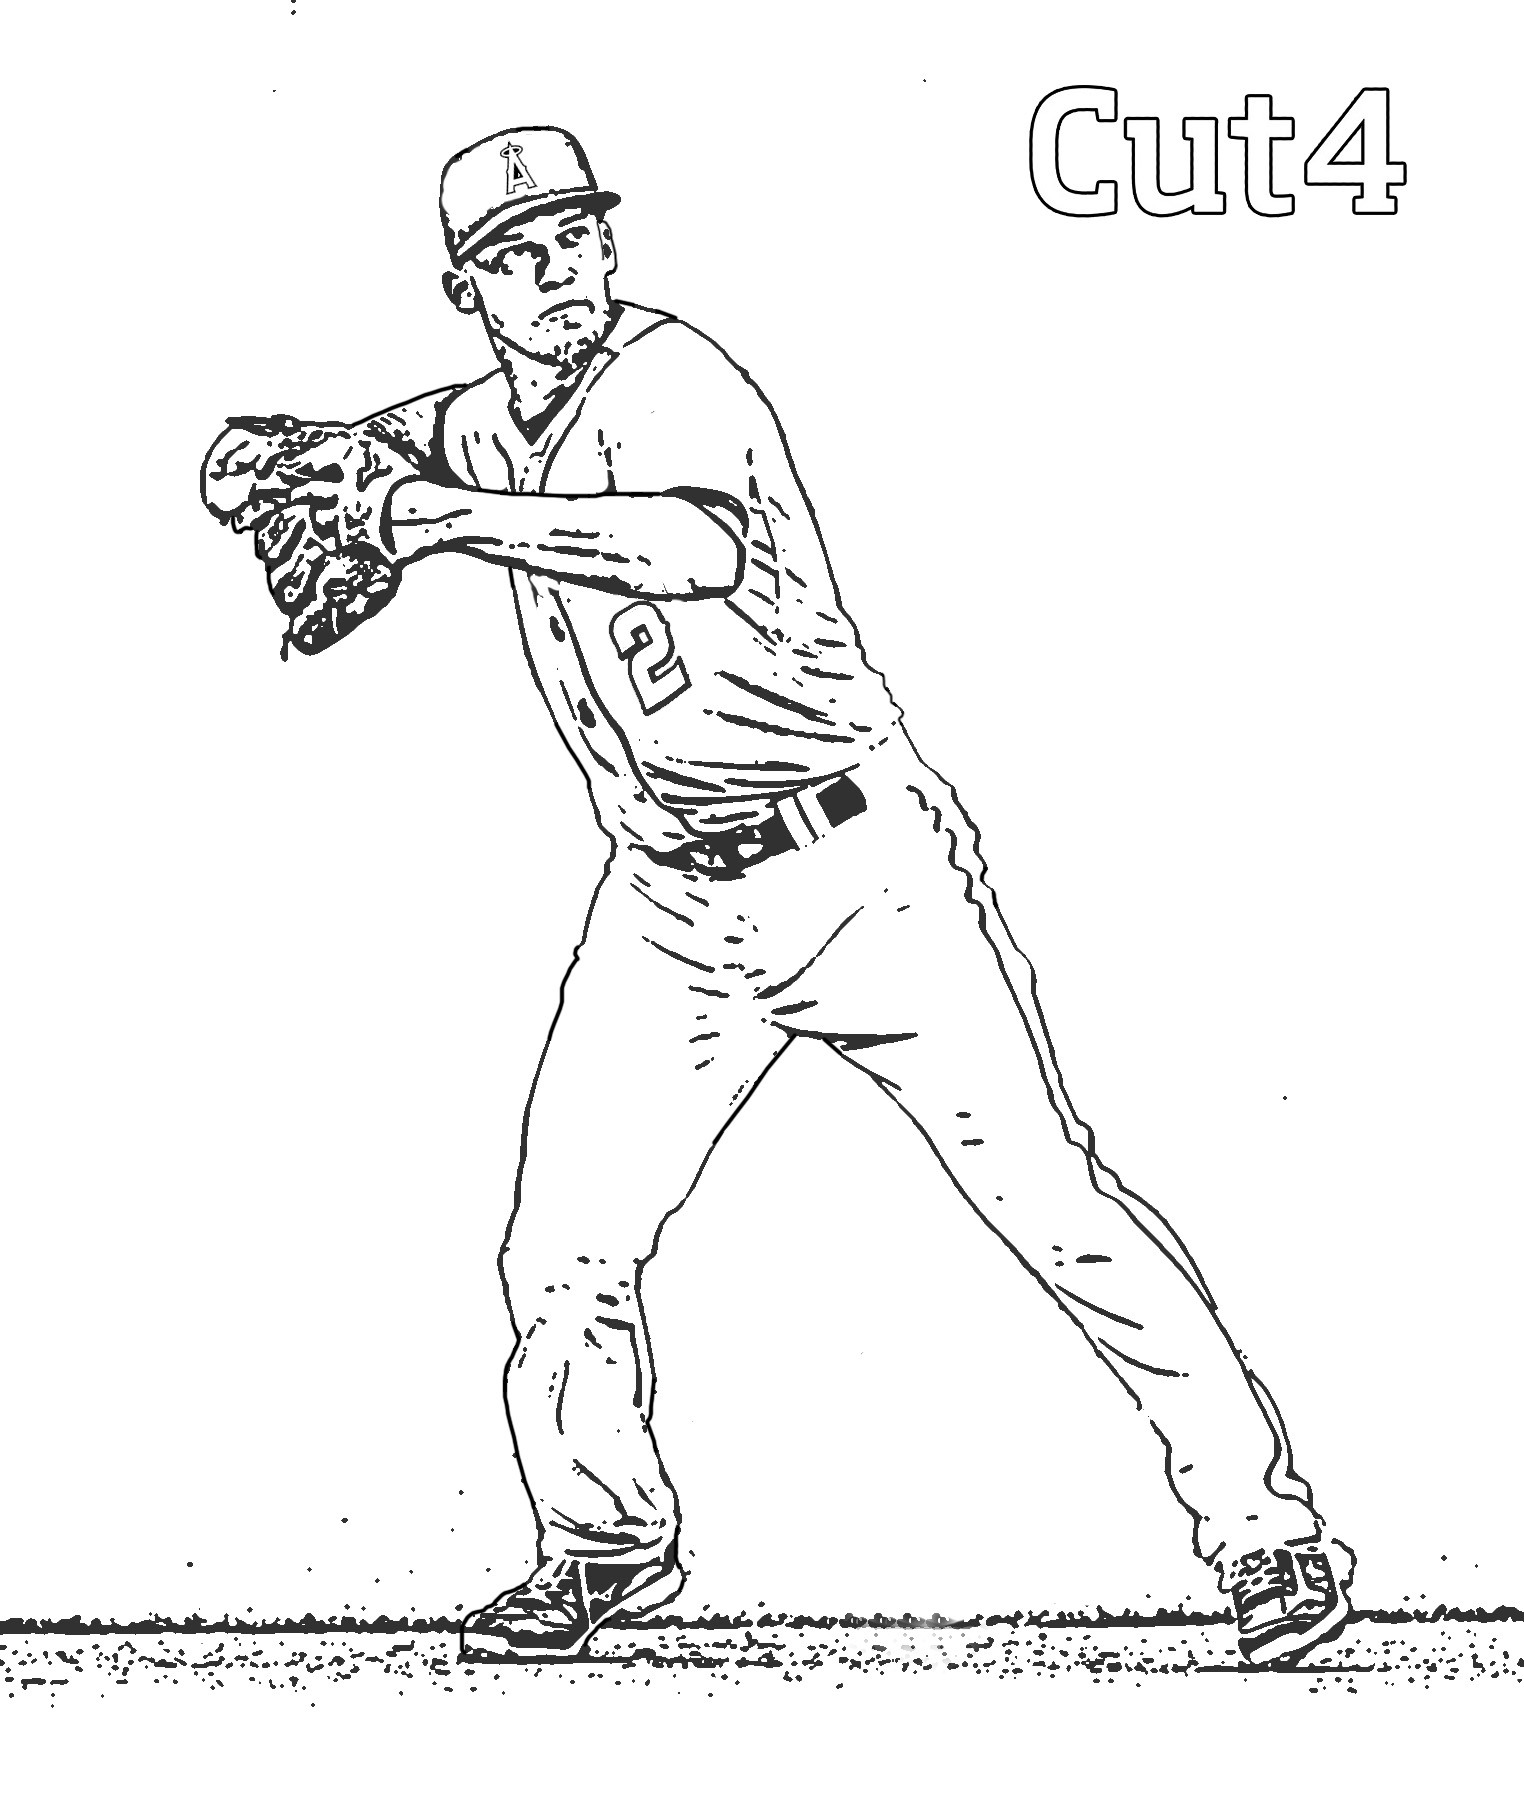 La Dodgers Coloring Pages At Getdrawings Com Free For Personal Use